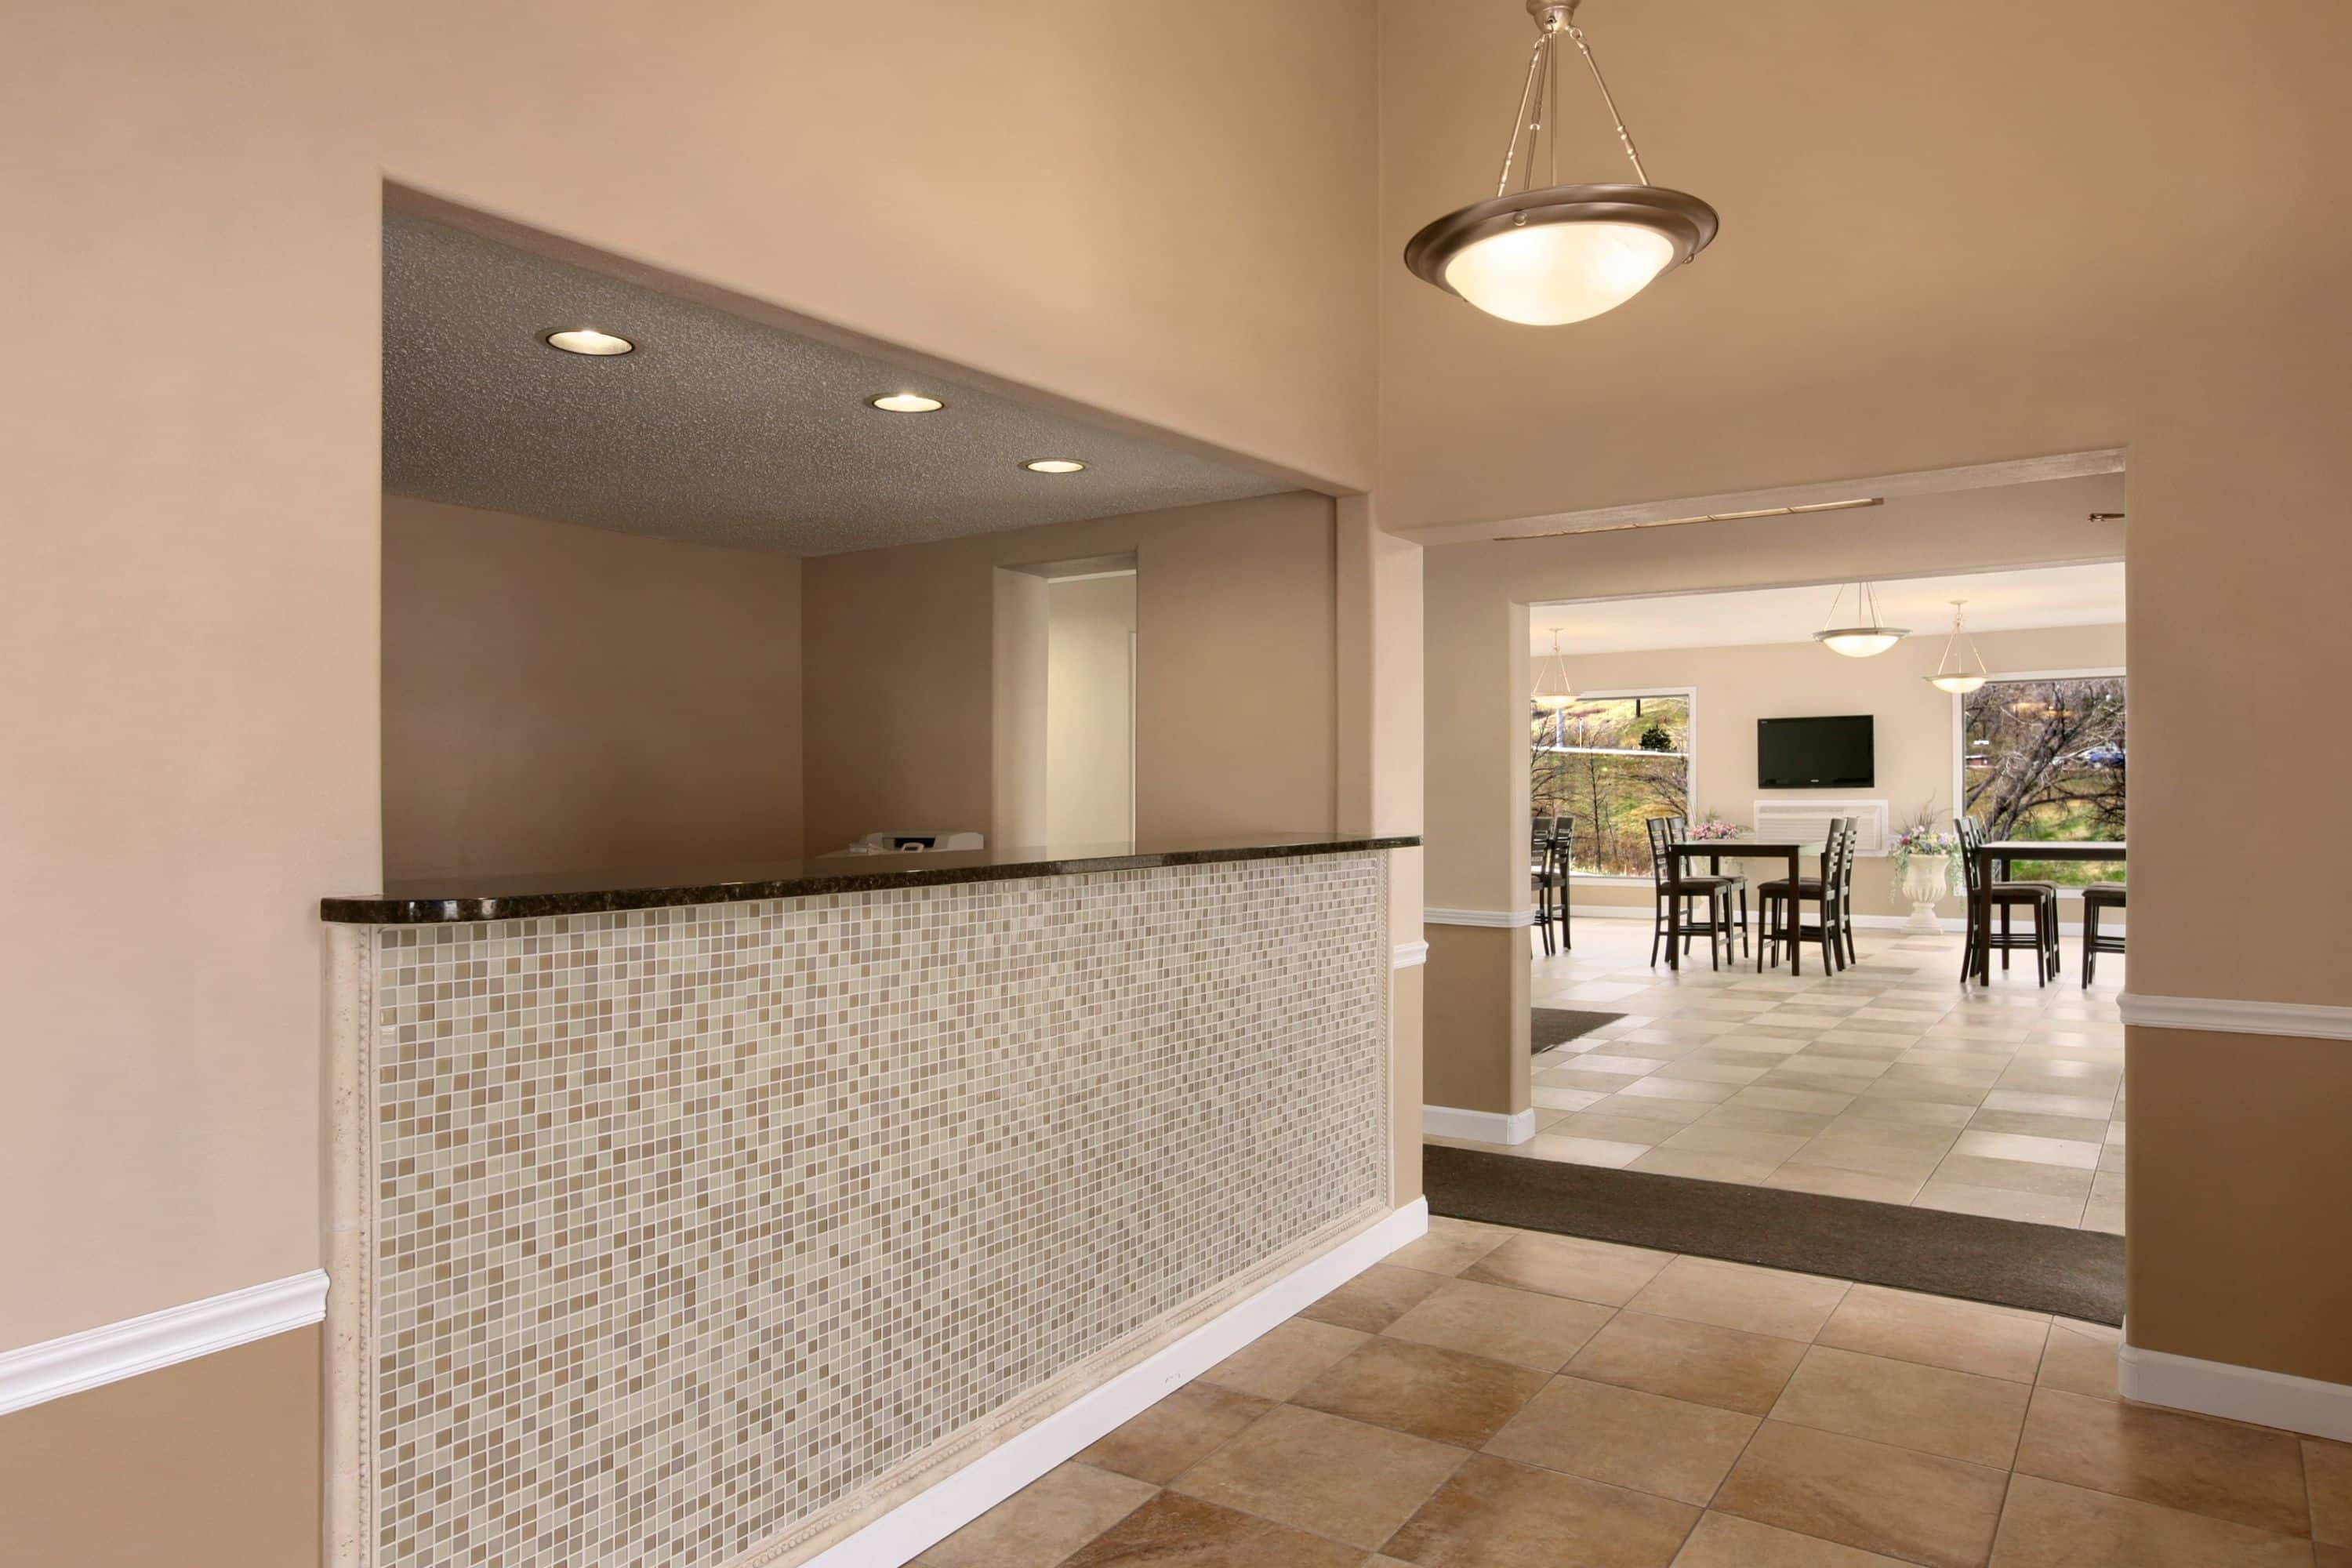 Hotels In Wall Sd Sunshine Inn Addon Building Home2 Suites By